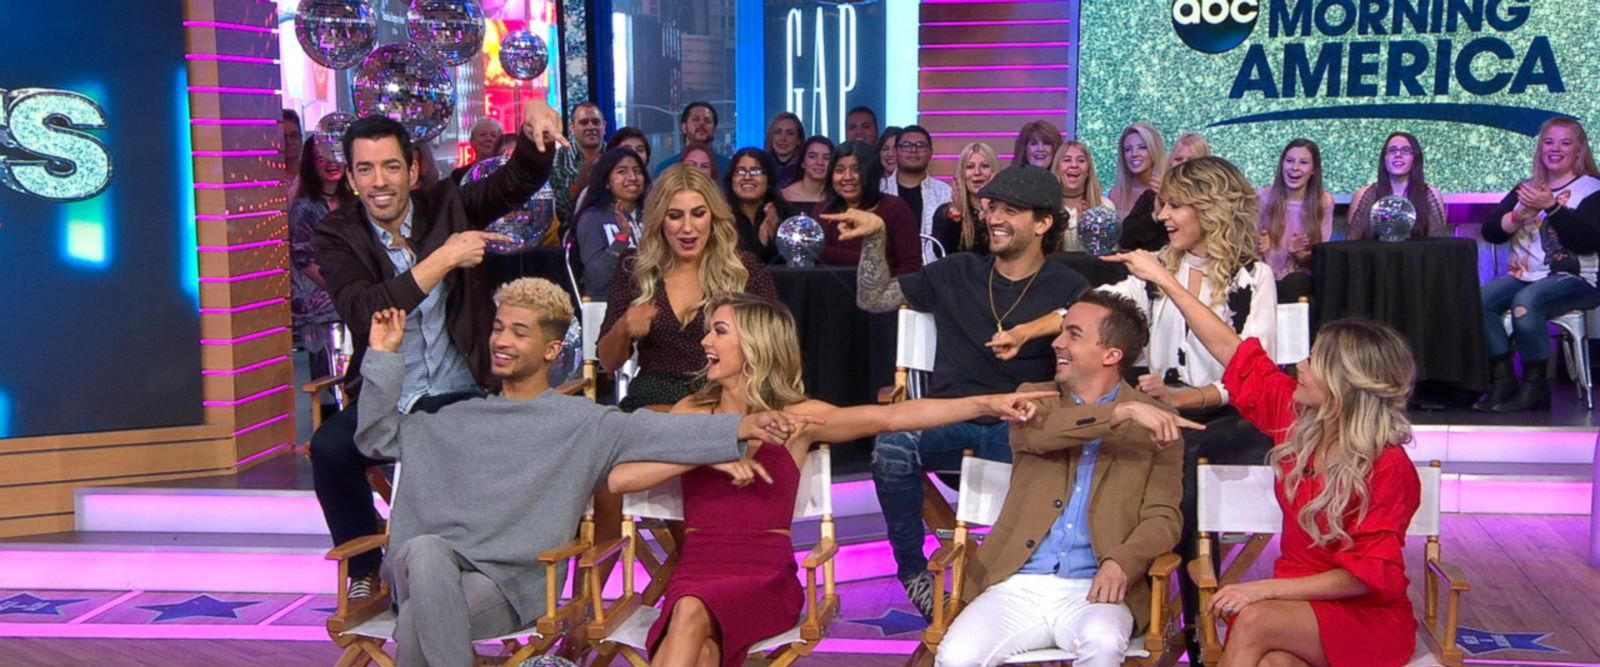 VIDEO: The 'Dancing With the Stars' season 25 finalists reflect on their time in the ballroom